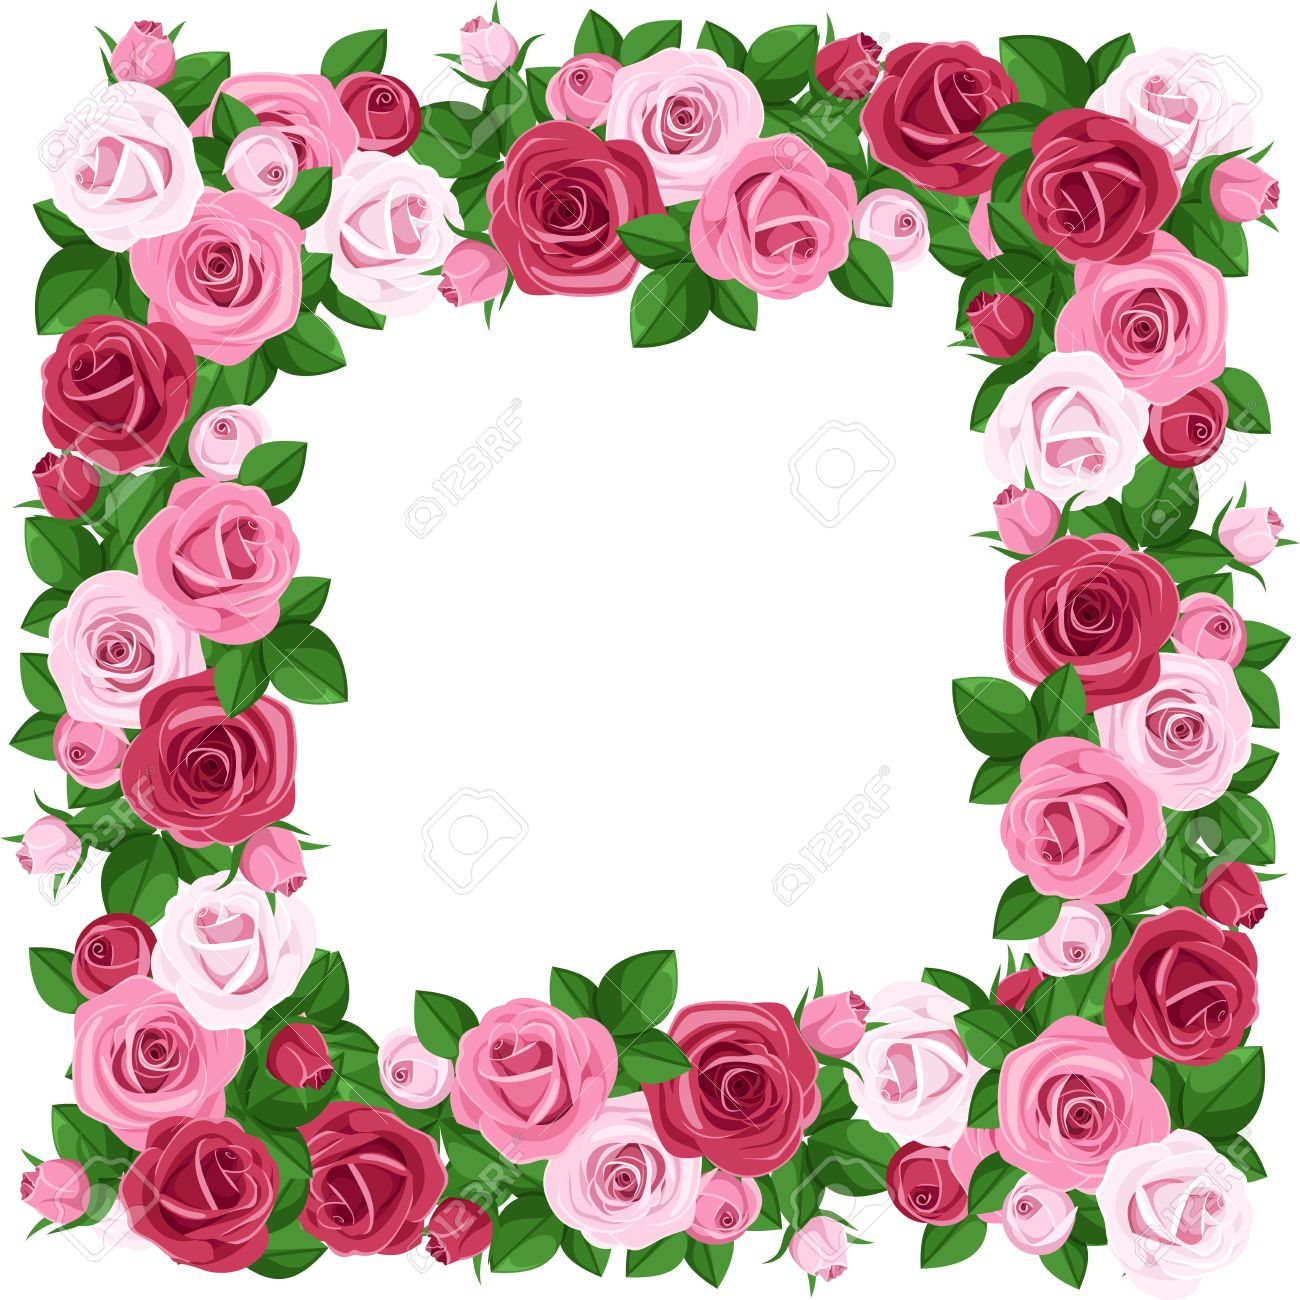 23795 Rose Border Stock Illustrations Cliparts And Royalty Free within Clip Art Rose Border